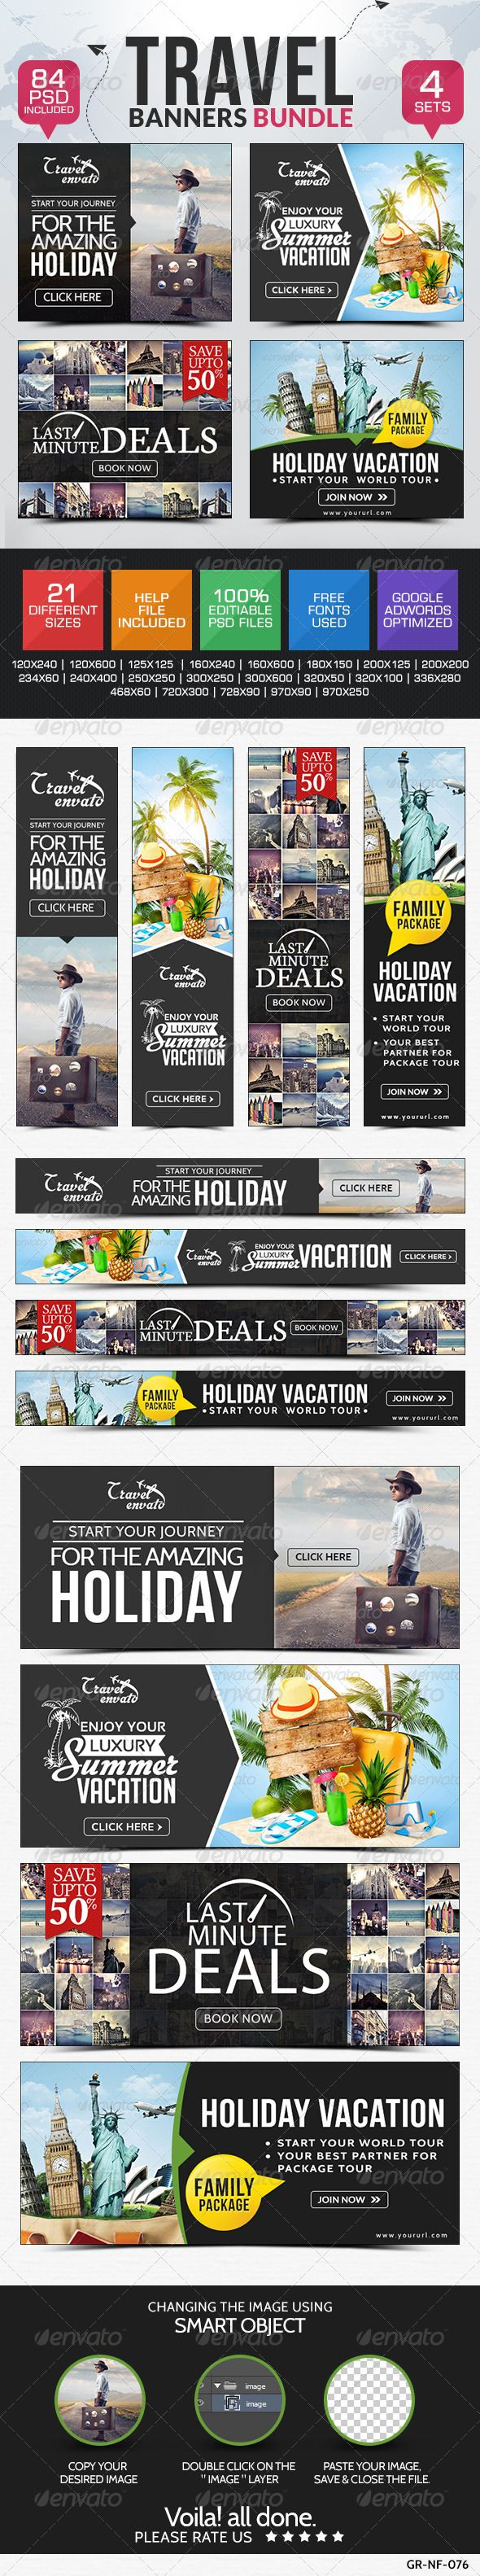 Travel Banner Sets Bundle - 4 Sets Template PSD | Buy and Download: http://graphicriver.net/item/travel-banner-sets-bundle-4-sets/8227069?WT.ac=category_thumb&WT.z_author=doto&ref=ksioks